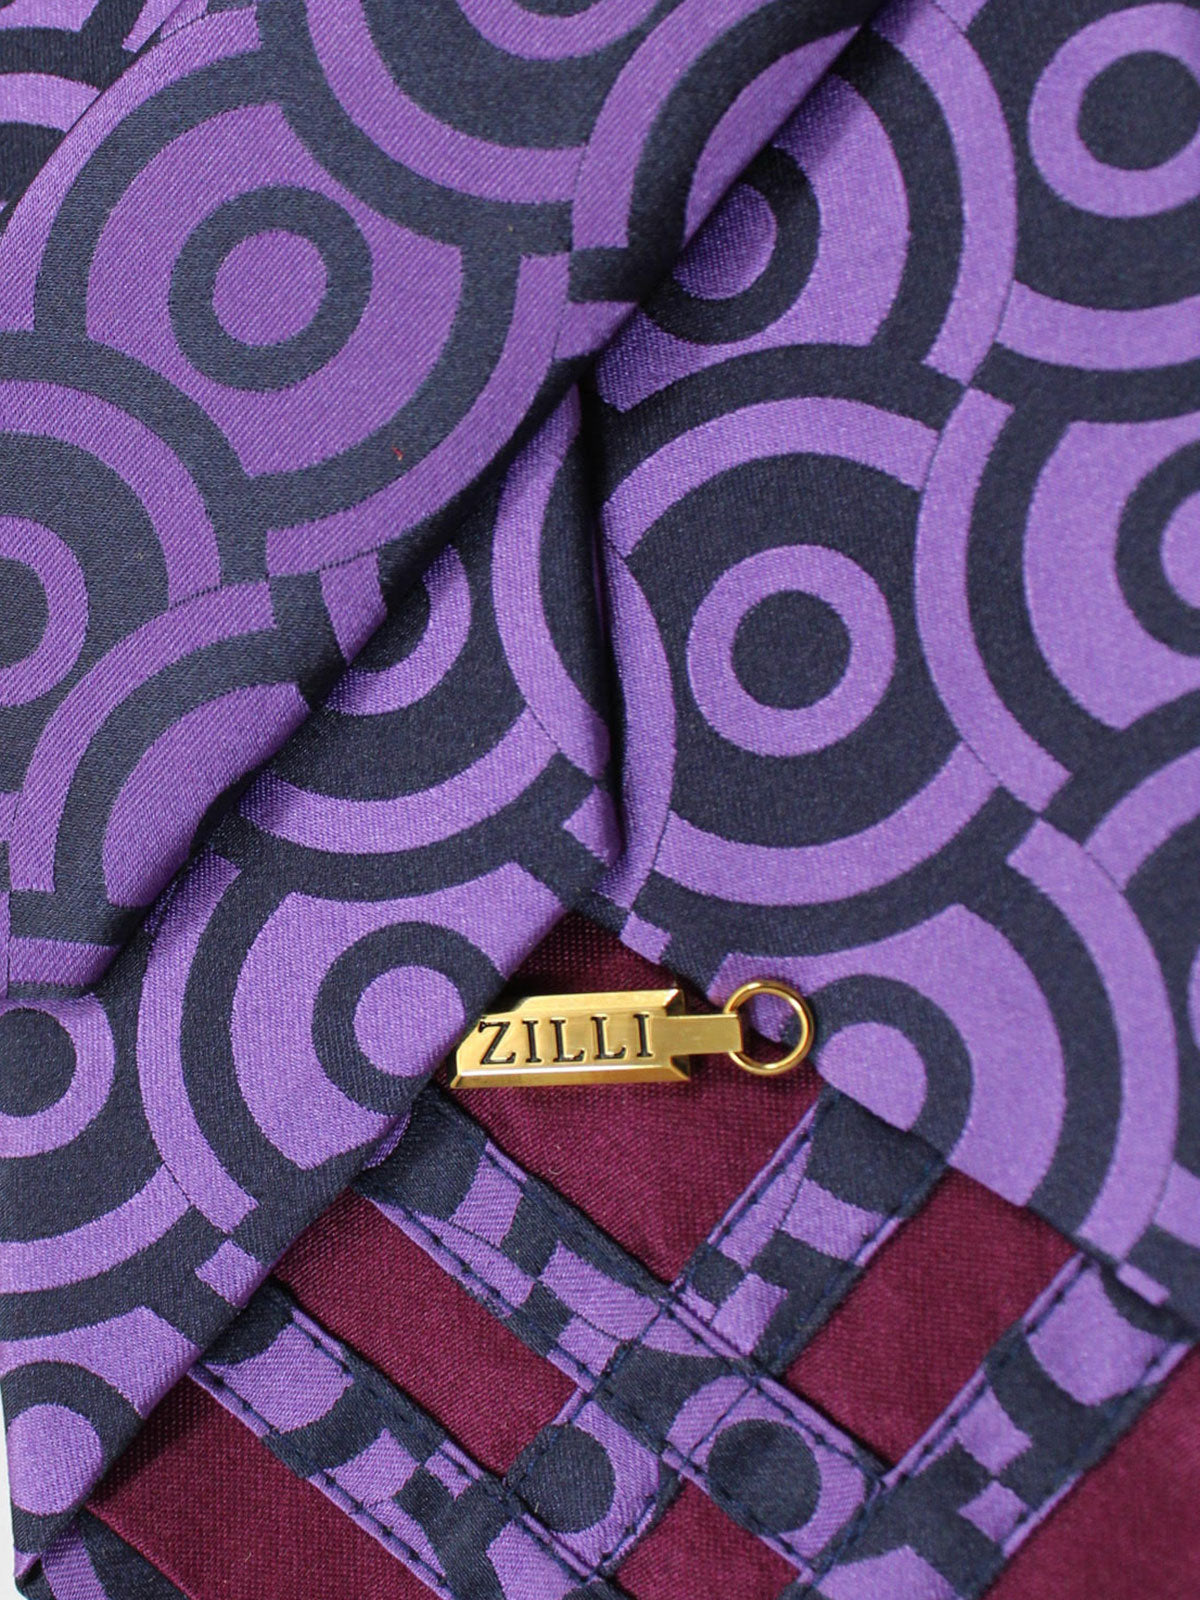 Zilli Silk Tie Purple Geometric Design - Wide Necktie